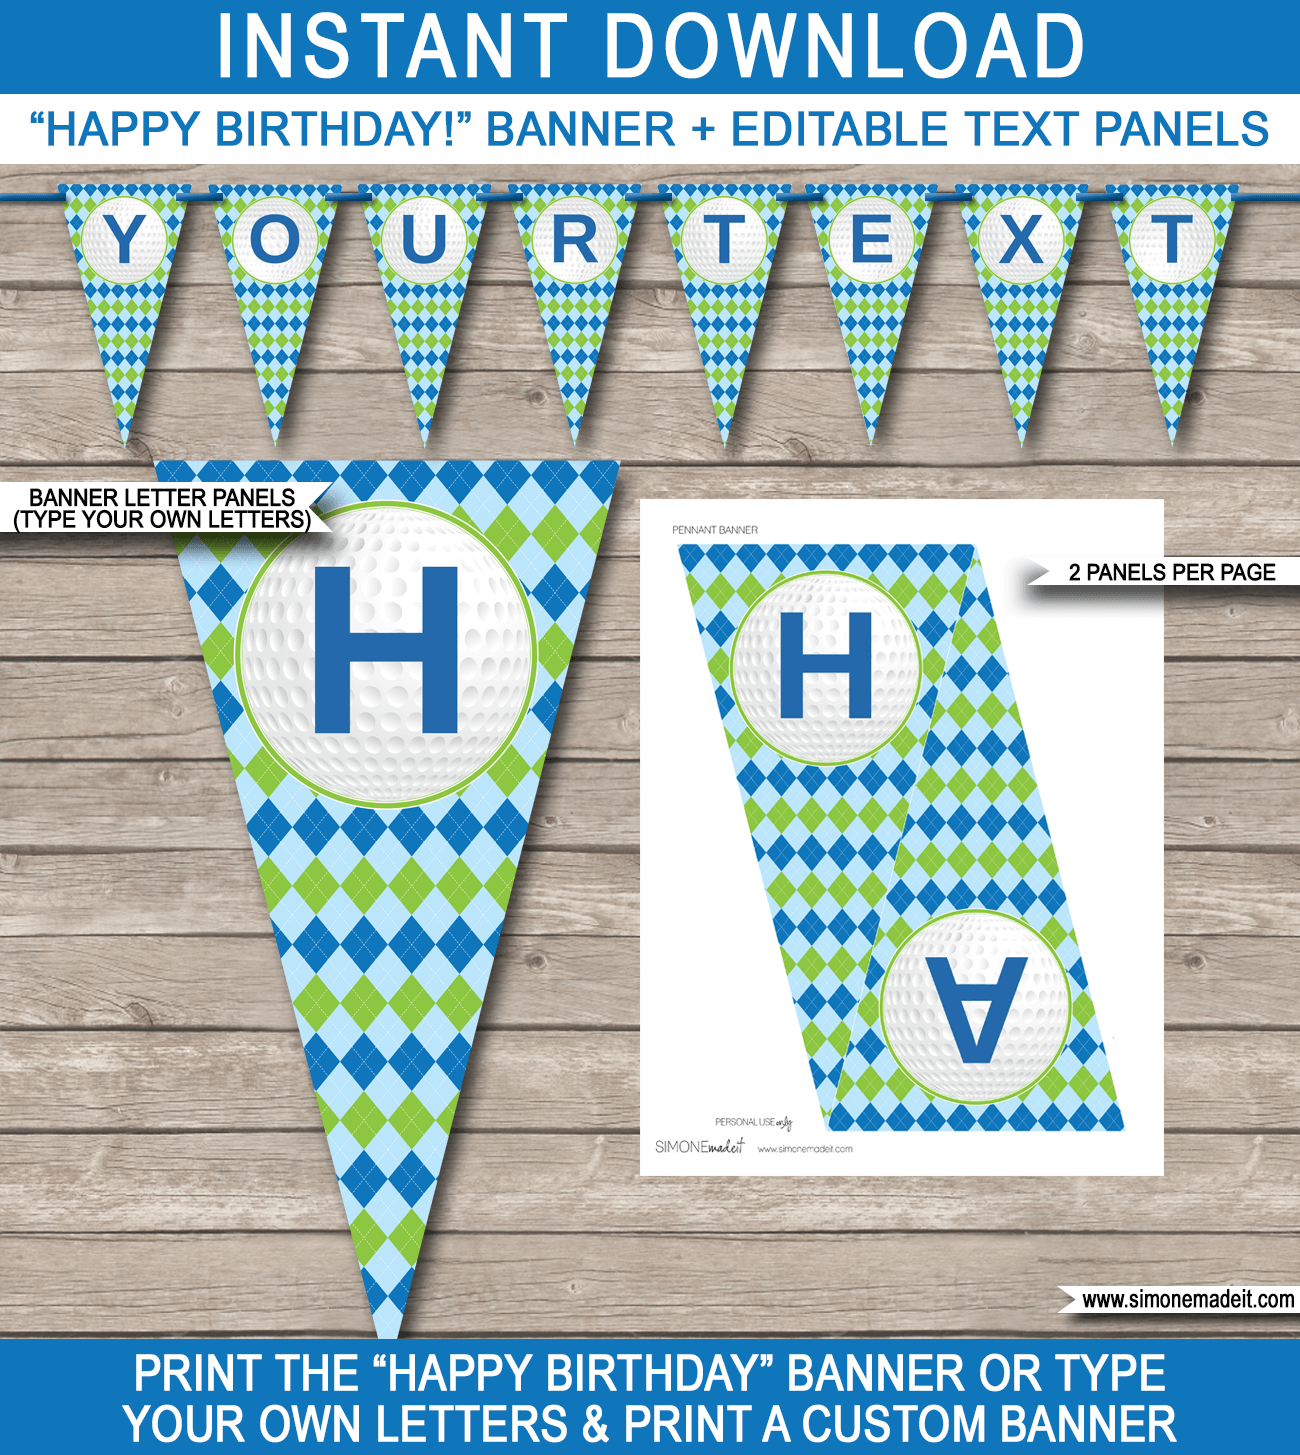 Happy birthday banner template datariouruguay maxwellsz